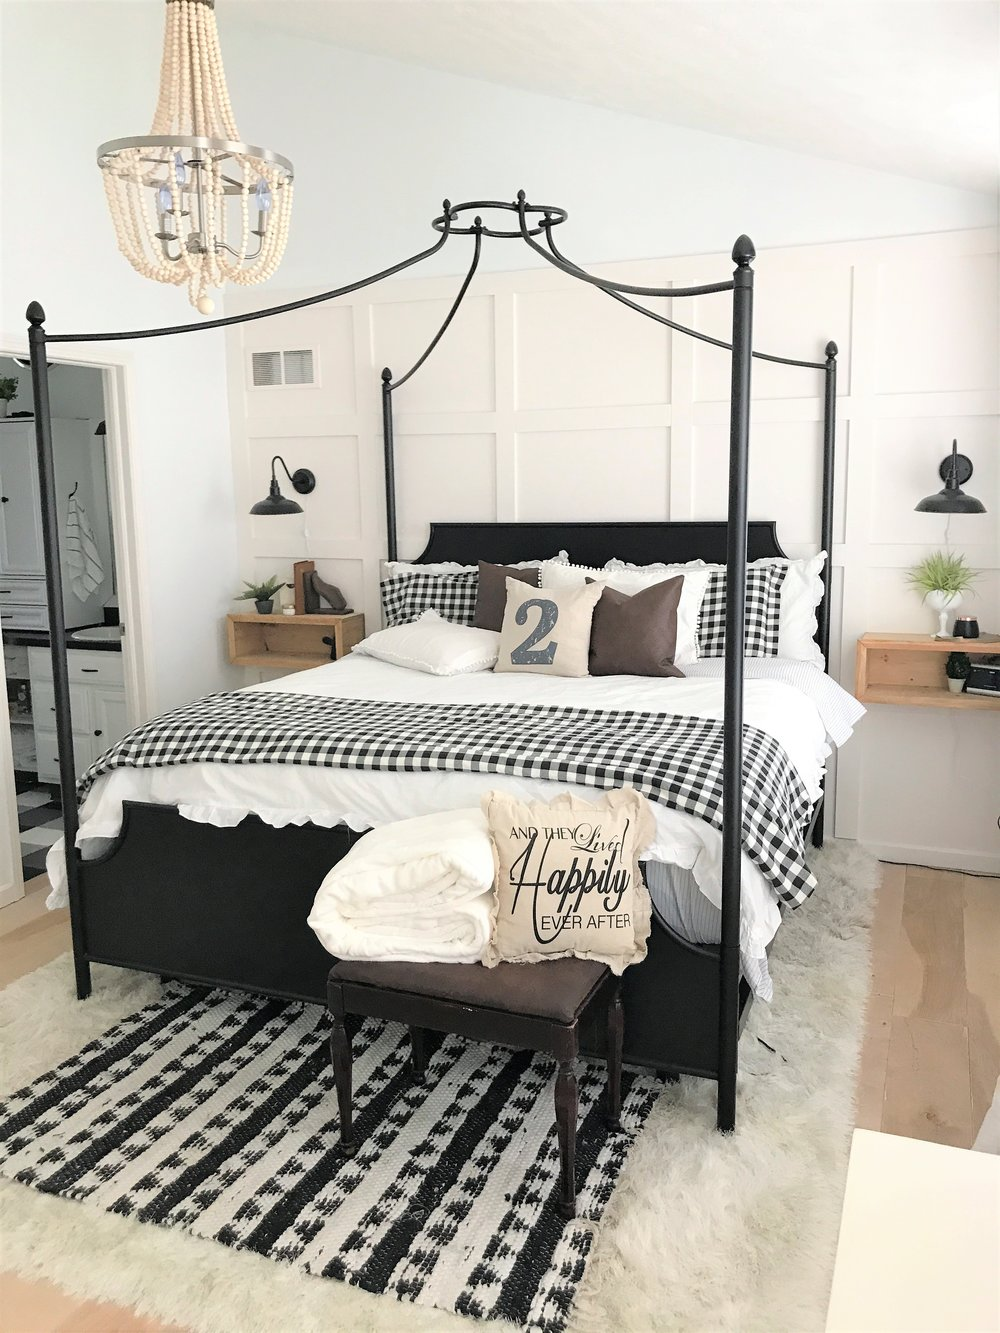 I now love the view from the bedroom to the bathroom and vise versa the complete modern farmhouse vibe is just perfection to me